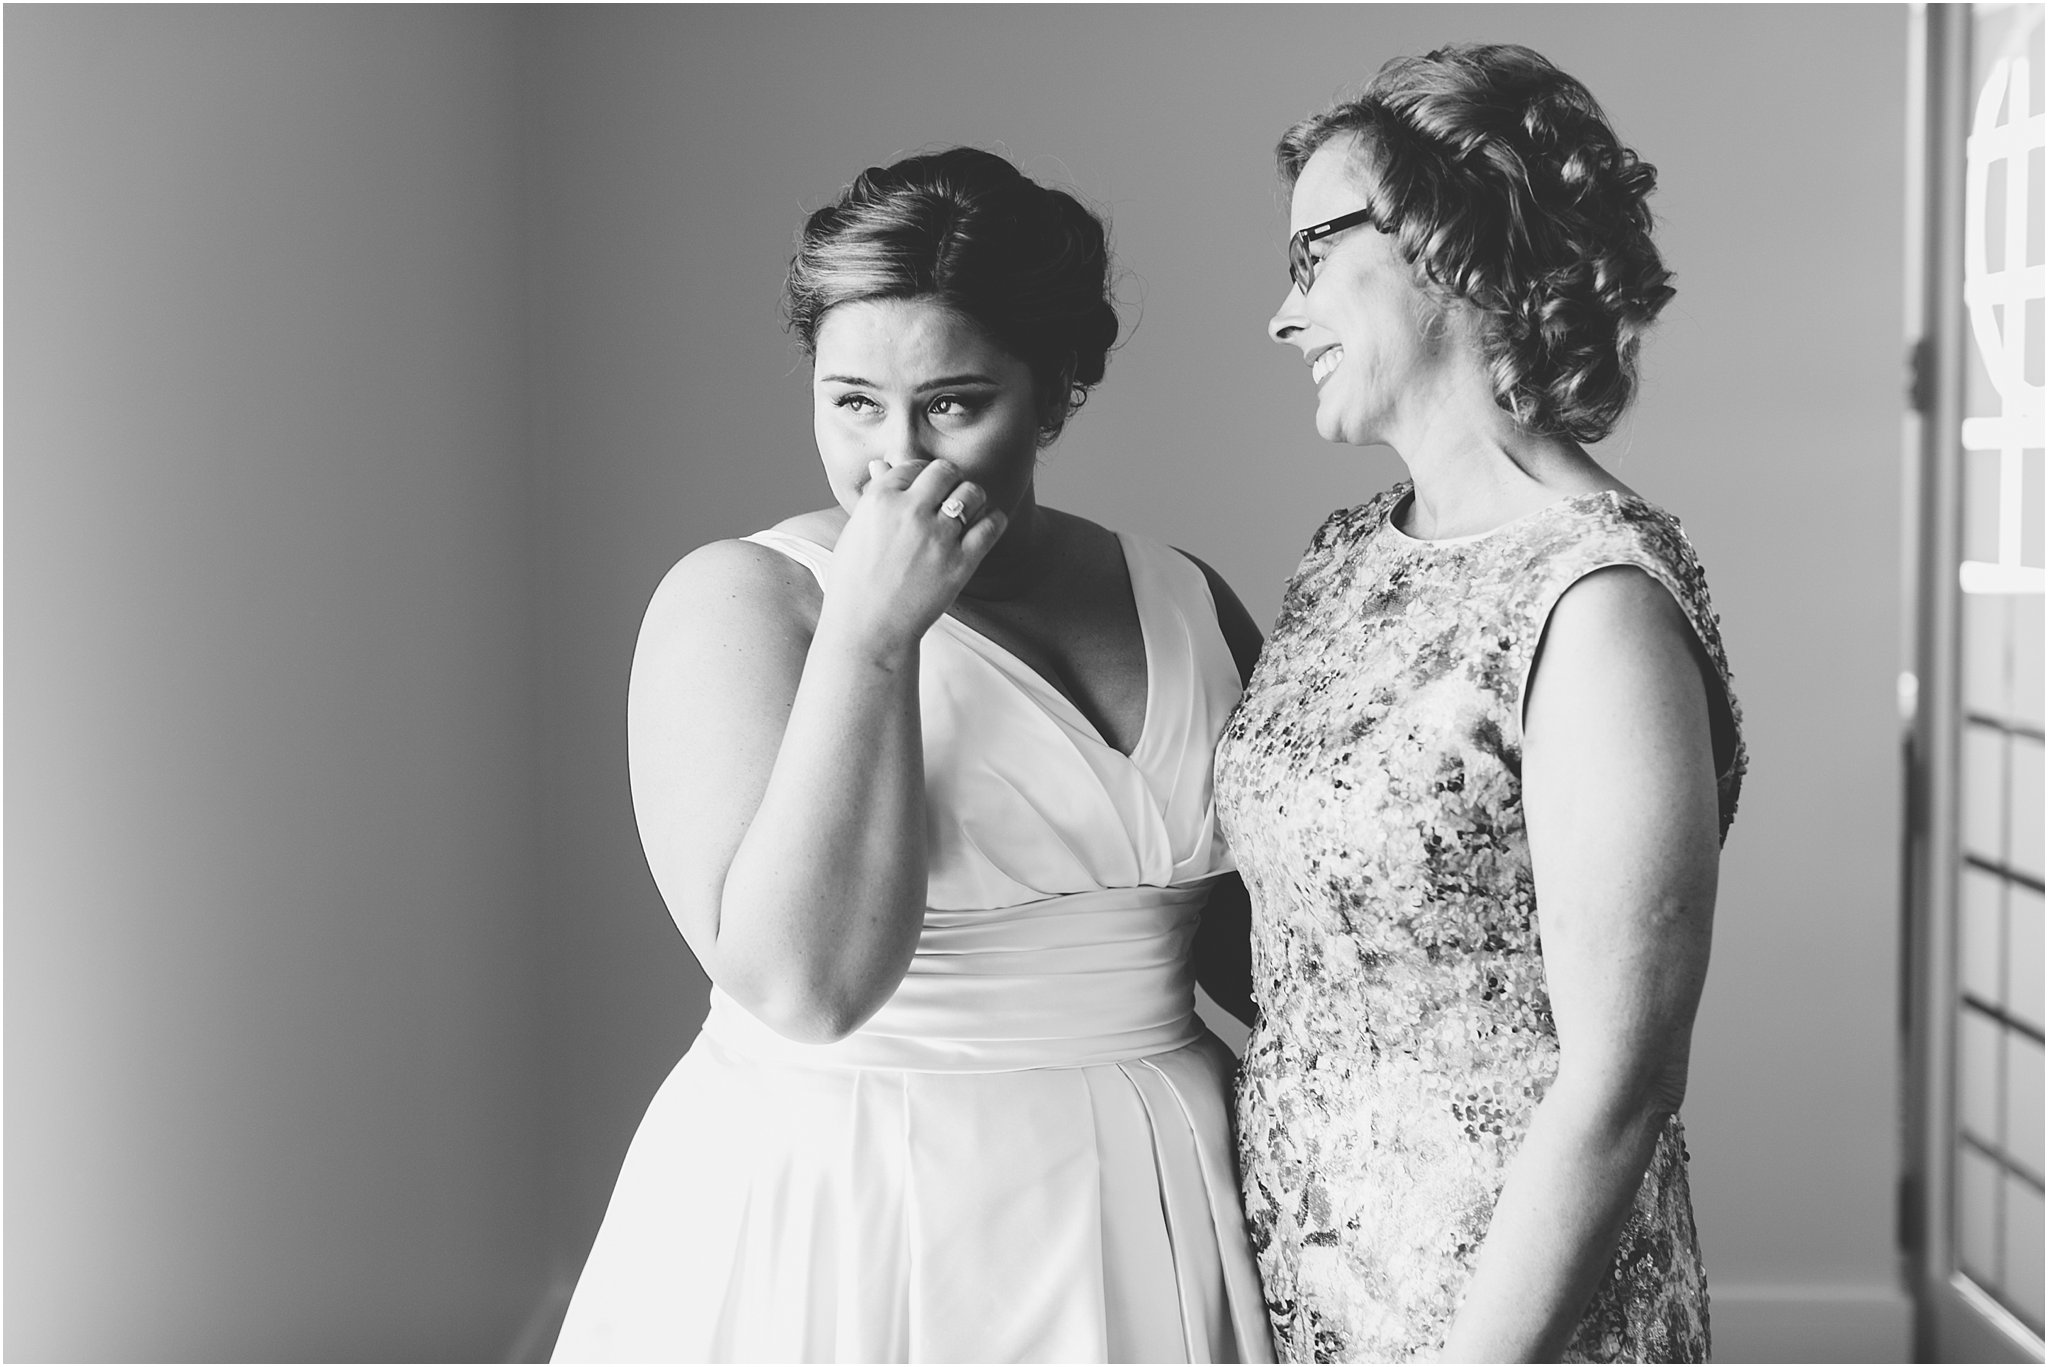 va_jessica_ryan_photography_virginia_wedding_norfolk_harrison_opera_house_norfolk_arts_district_portraits_3766